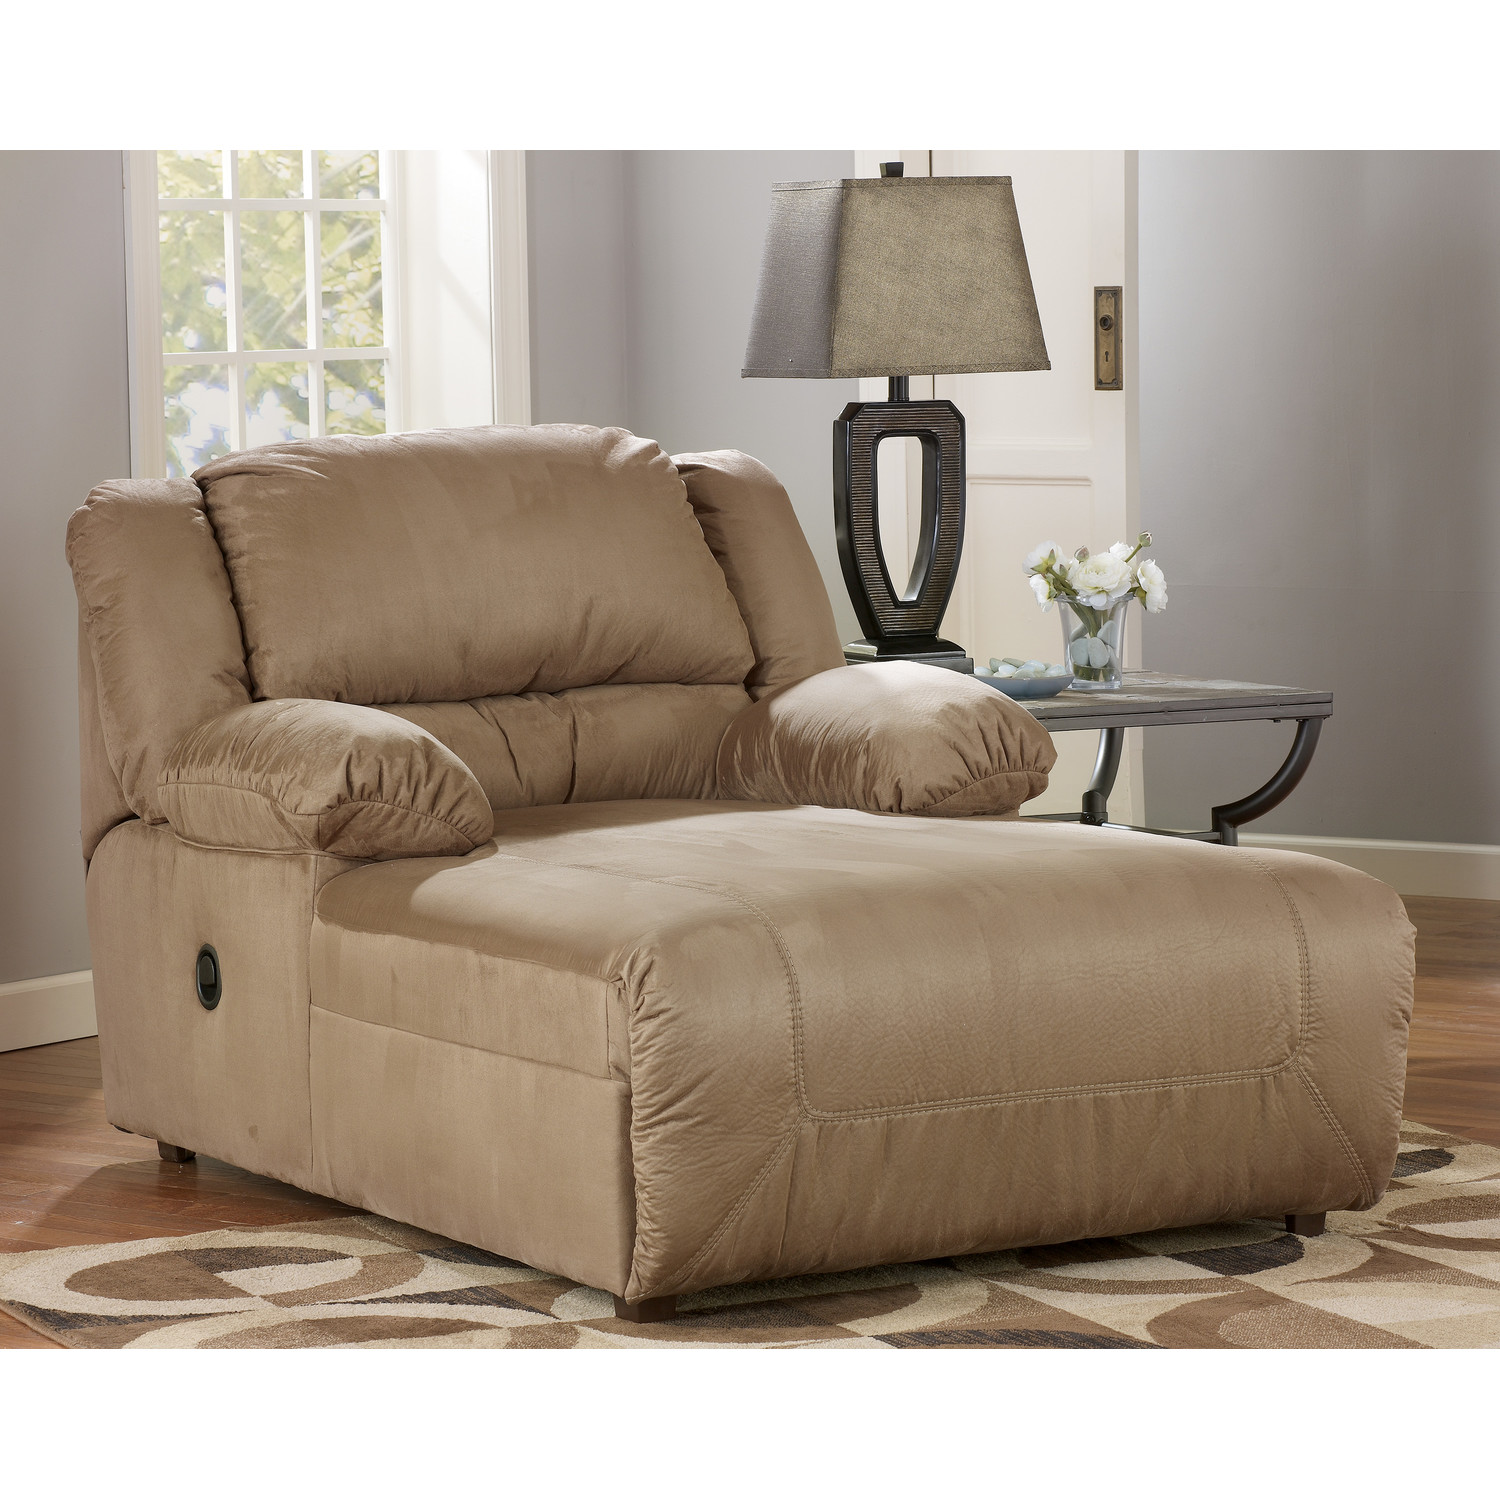 Best To Relax - Comfy Chair for Bedroom - HomesFeed on Comfy Bedroom Ideas  id=91698